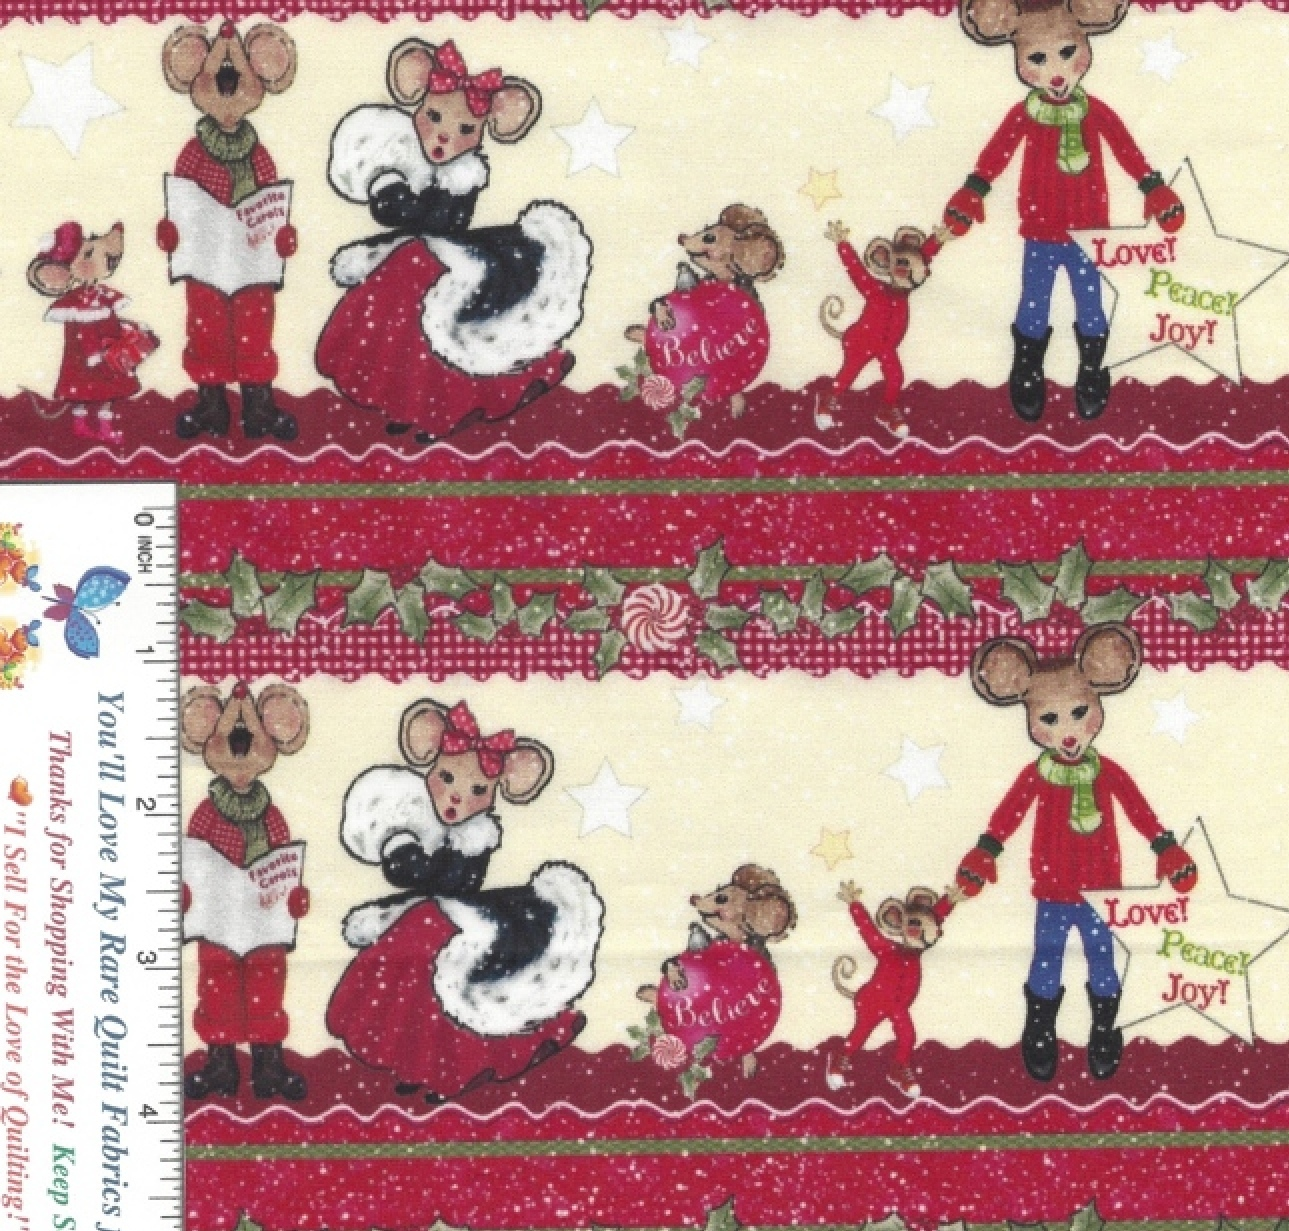 Only at Divine's, Merry Christmas Mouse, Mice, 2 Borders at 52 x 8 inches